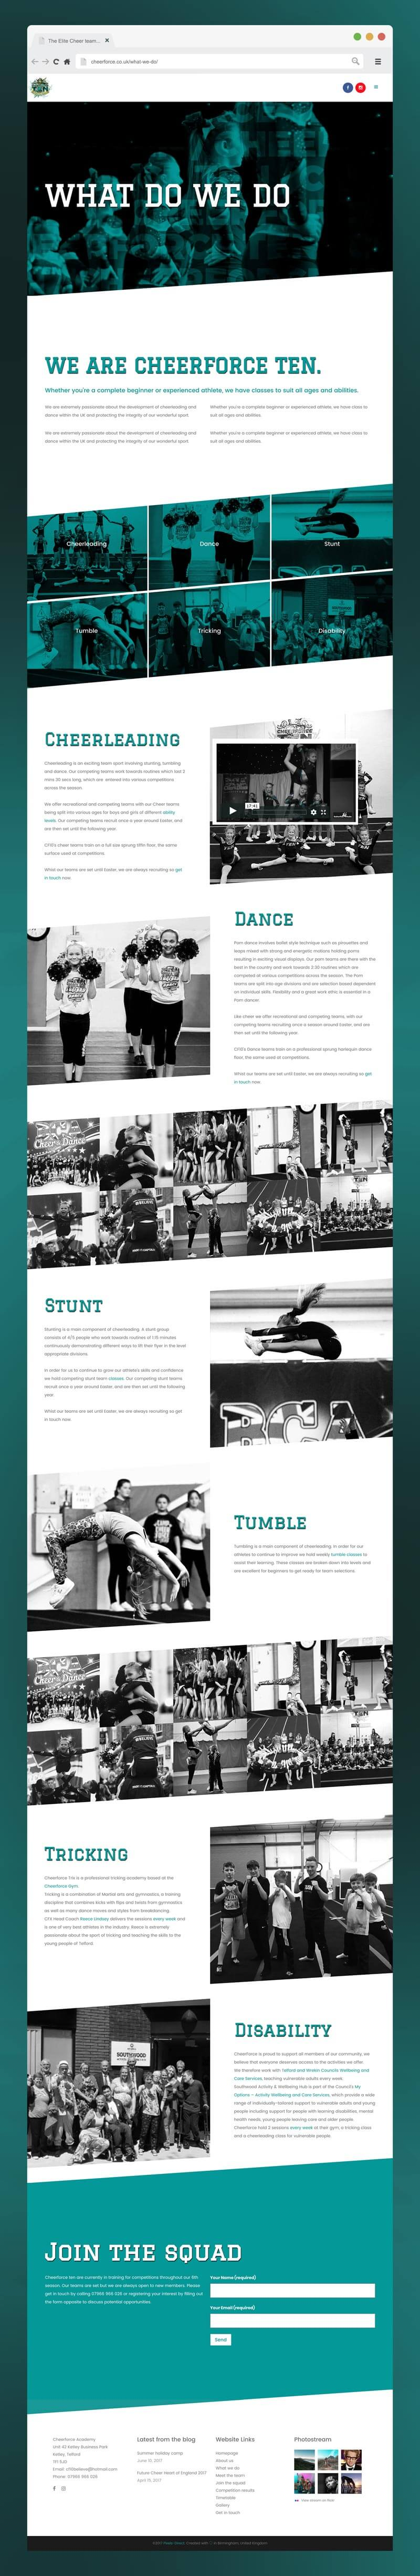 Website design for Cheerforce TEN, What We Do page